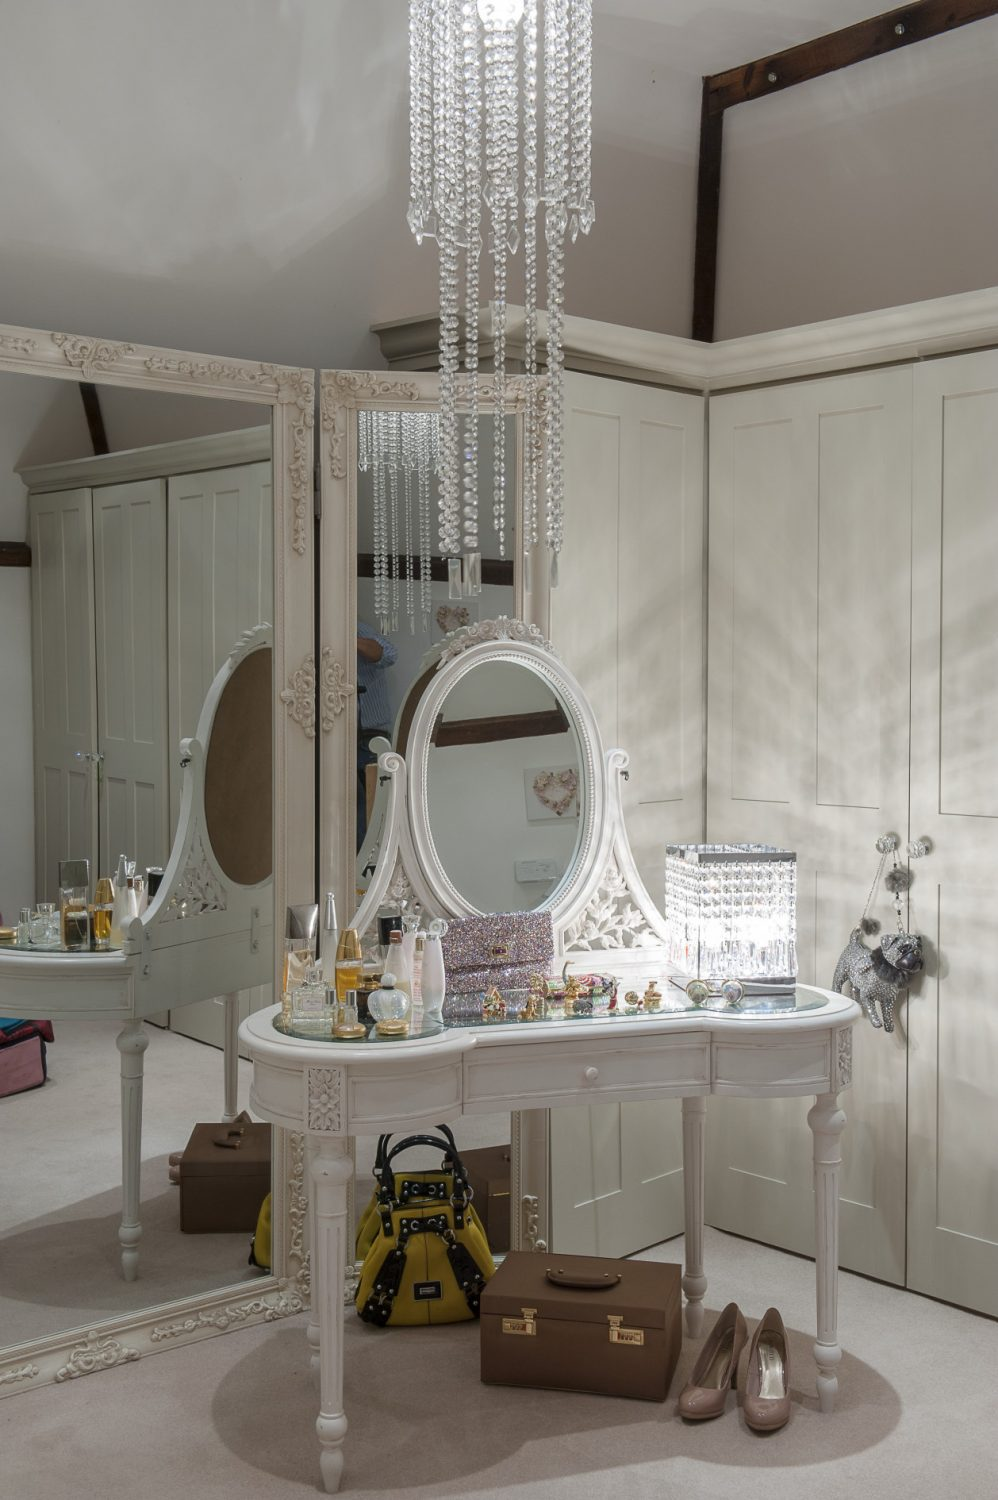 In the dressing room, fitted wardrobes line two walls. A chandelier hanging from the ceiling adds to the unabashed sense of glamour